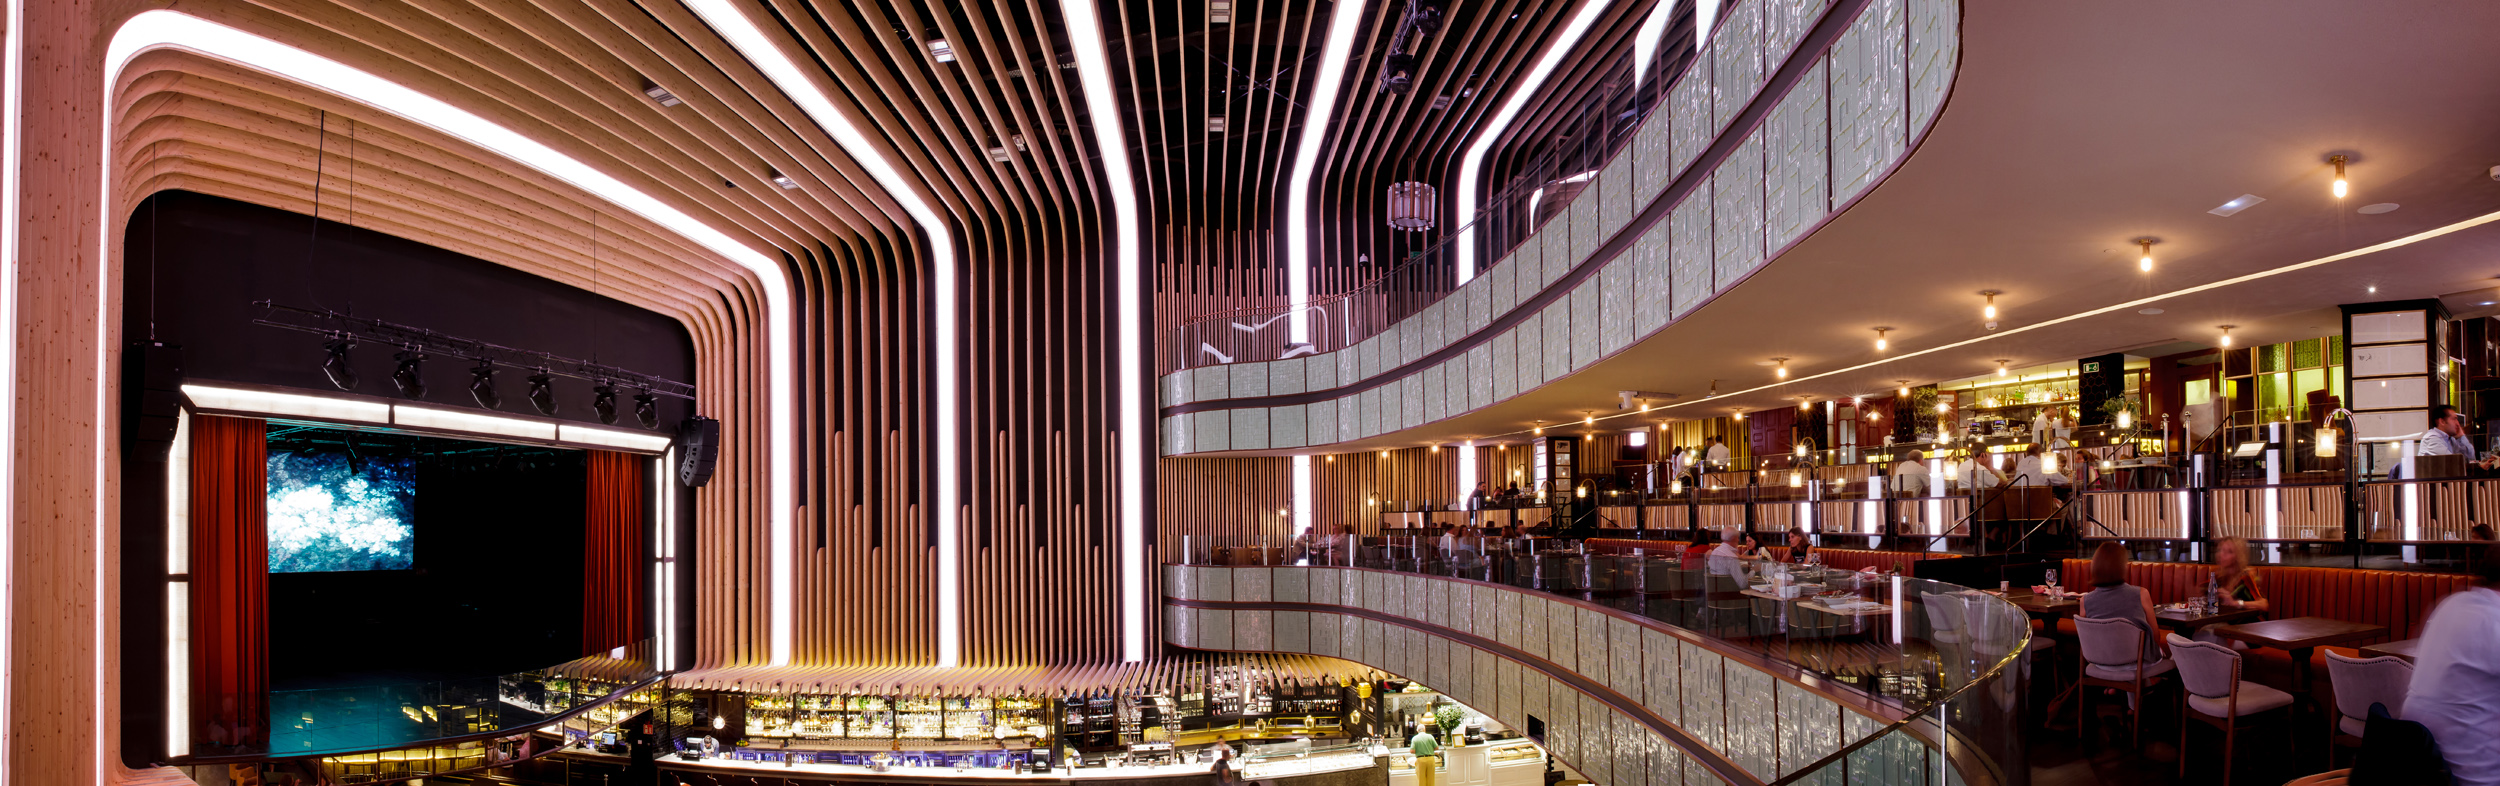 Restaurants_PLATEA MADRID _Madrid